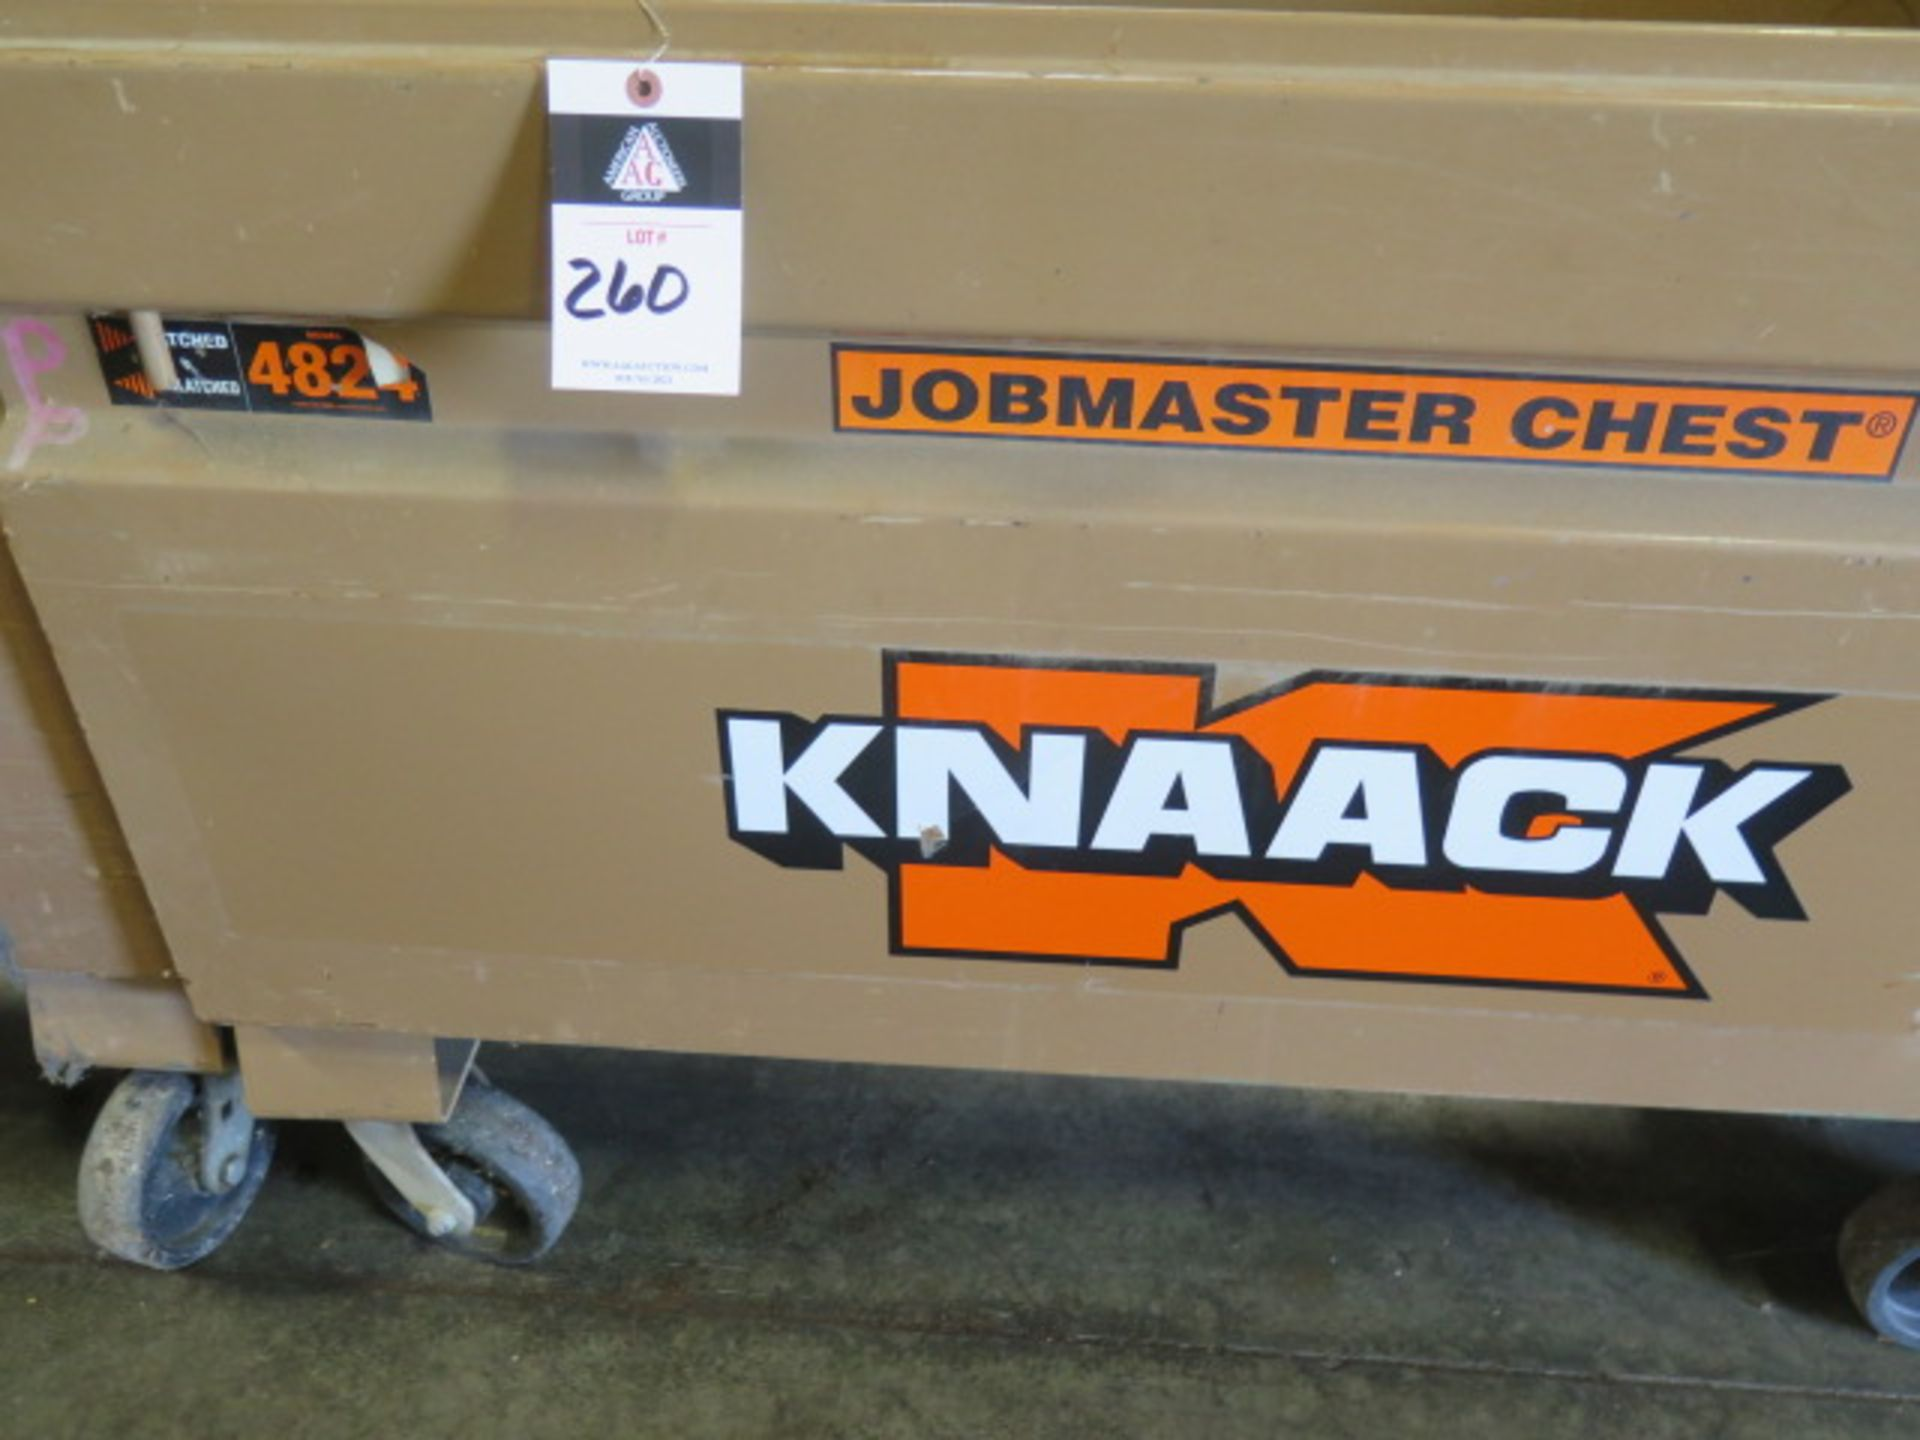 Knaack 4824 Rolling Job Box w/ 240V Extension Cords (SOLD AS-IS - NO WARRANTY) - Image 2 of 7